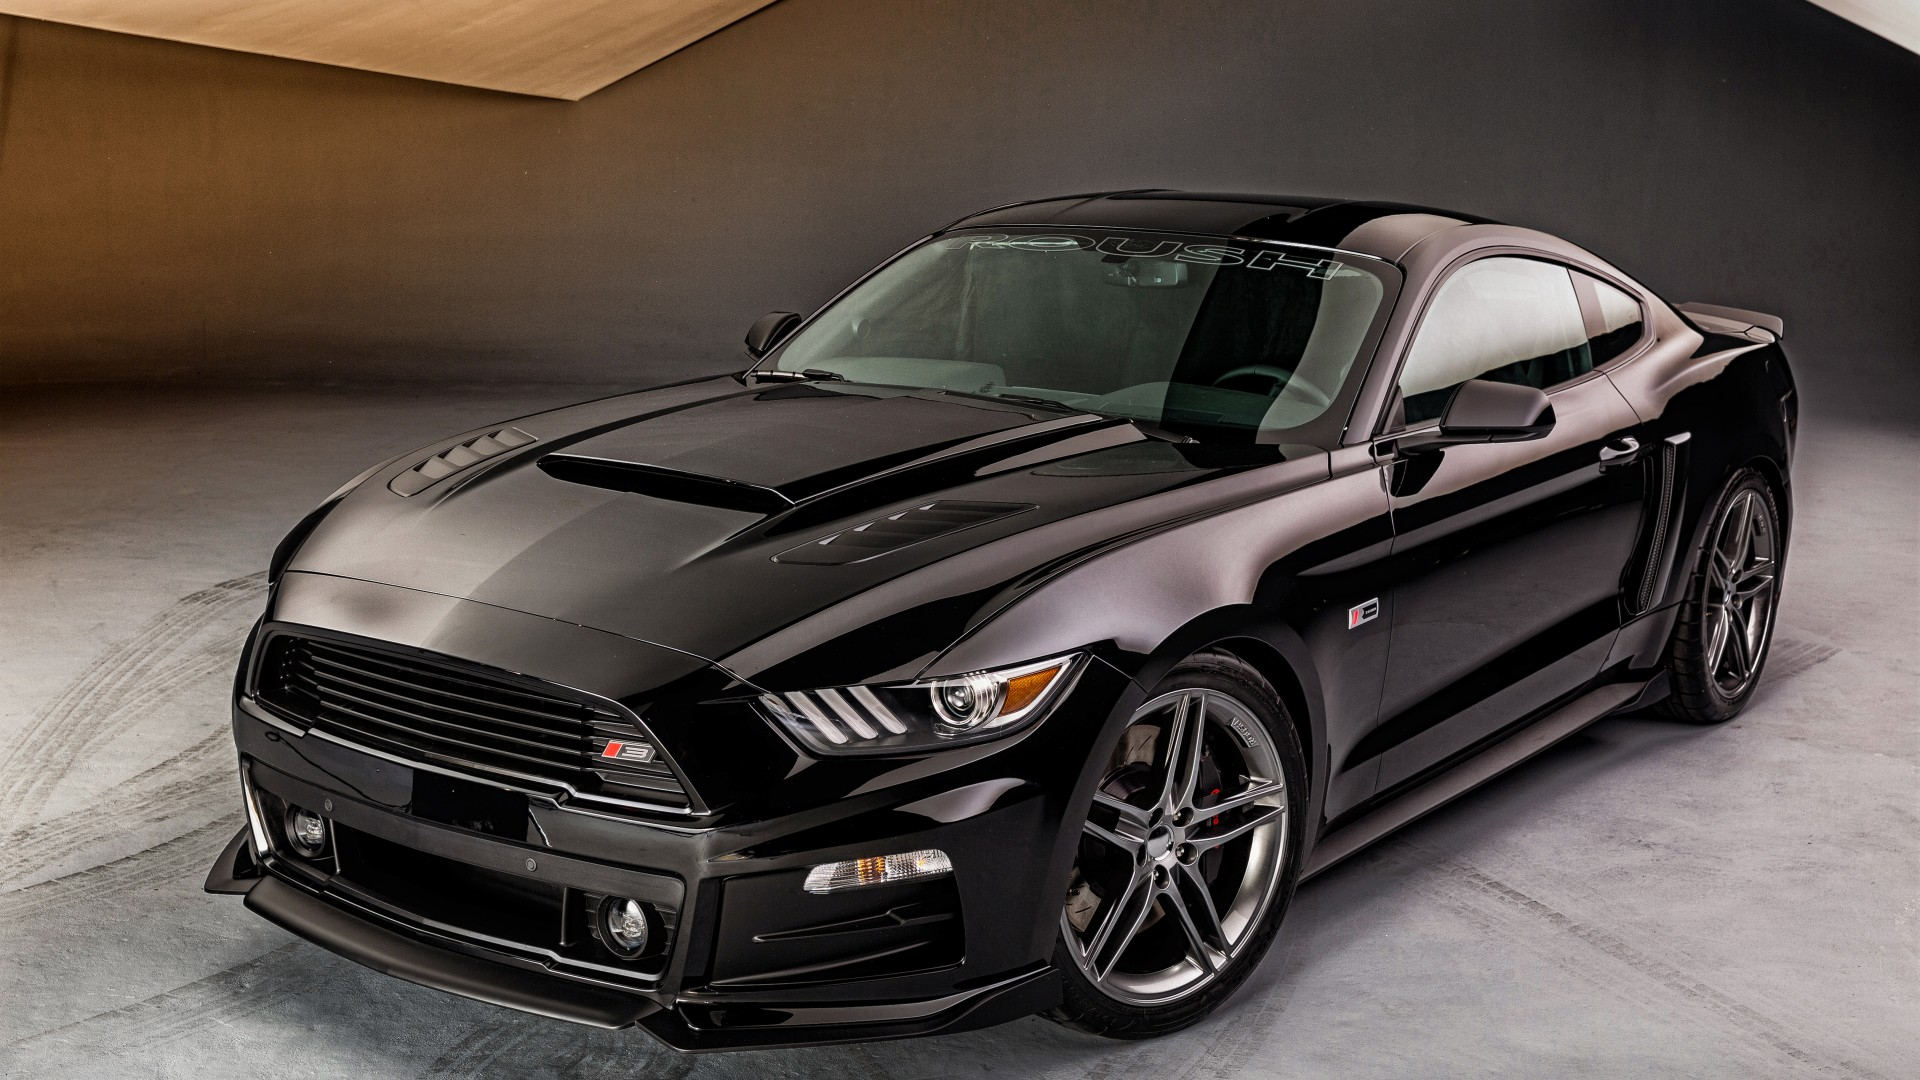 2015 Roush Ford Mustang RS Wallpaper | HD Car Wallpapers ...